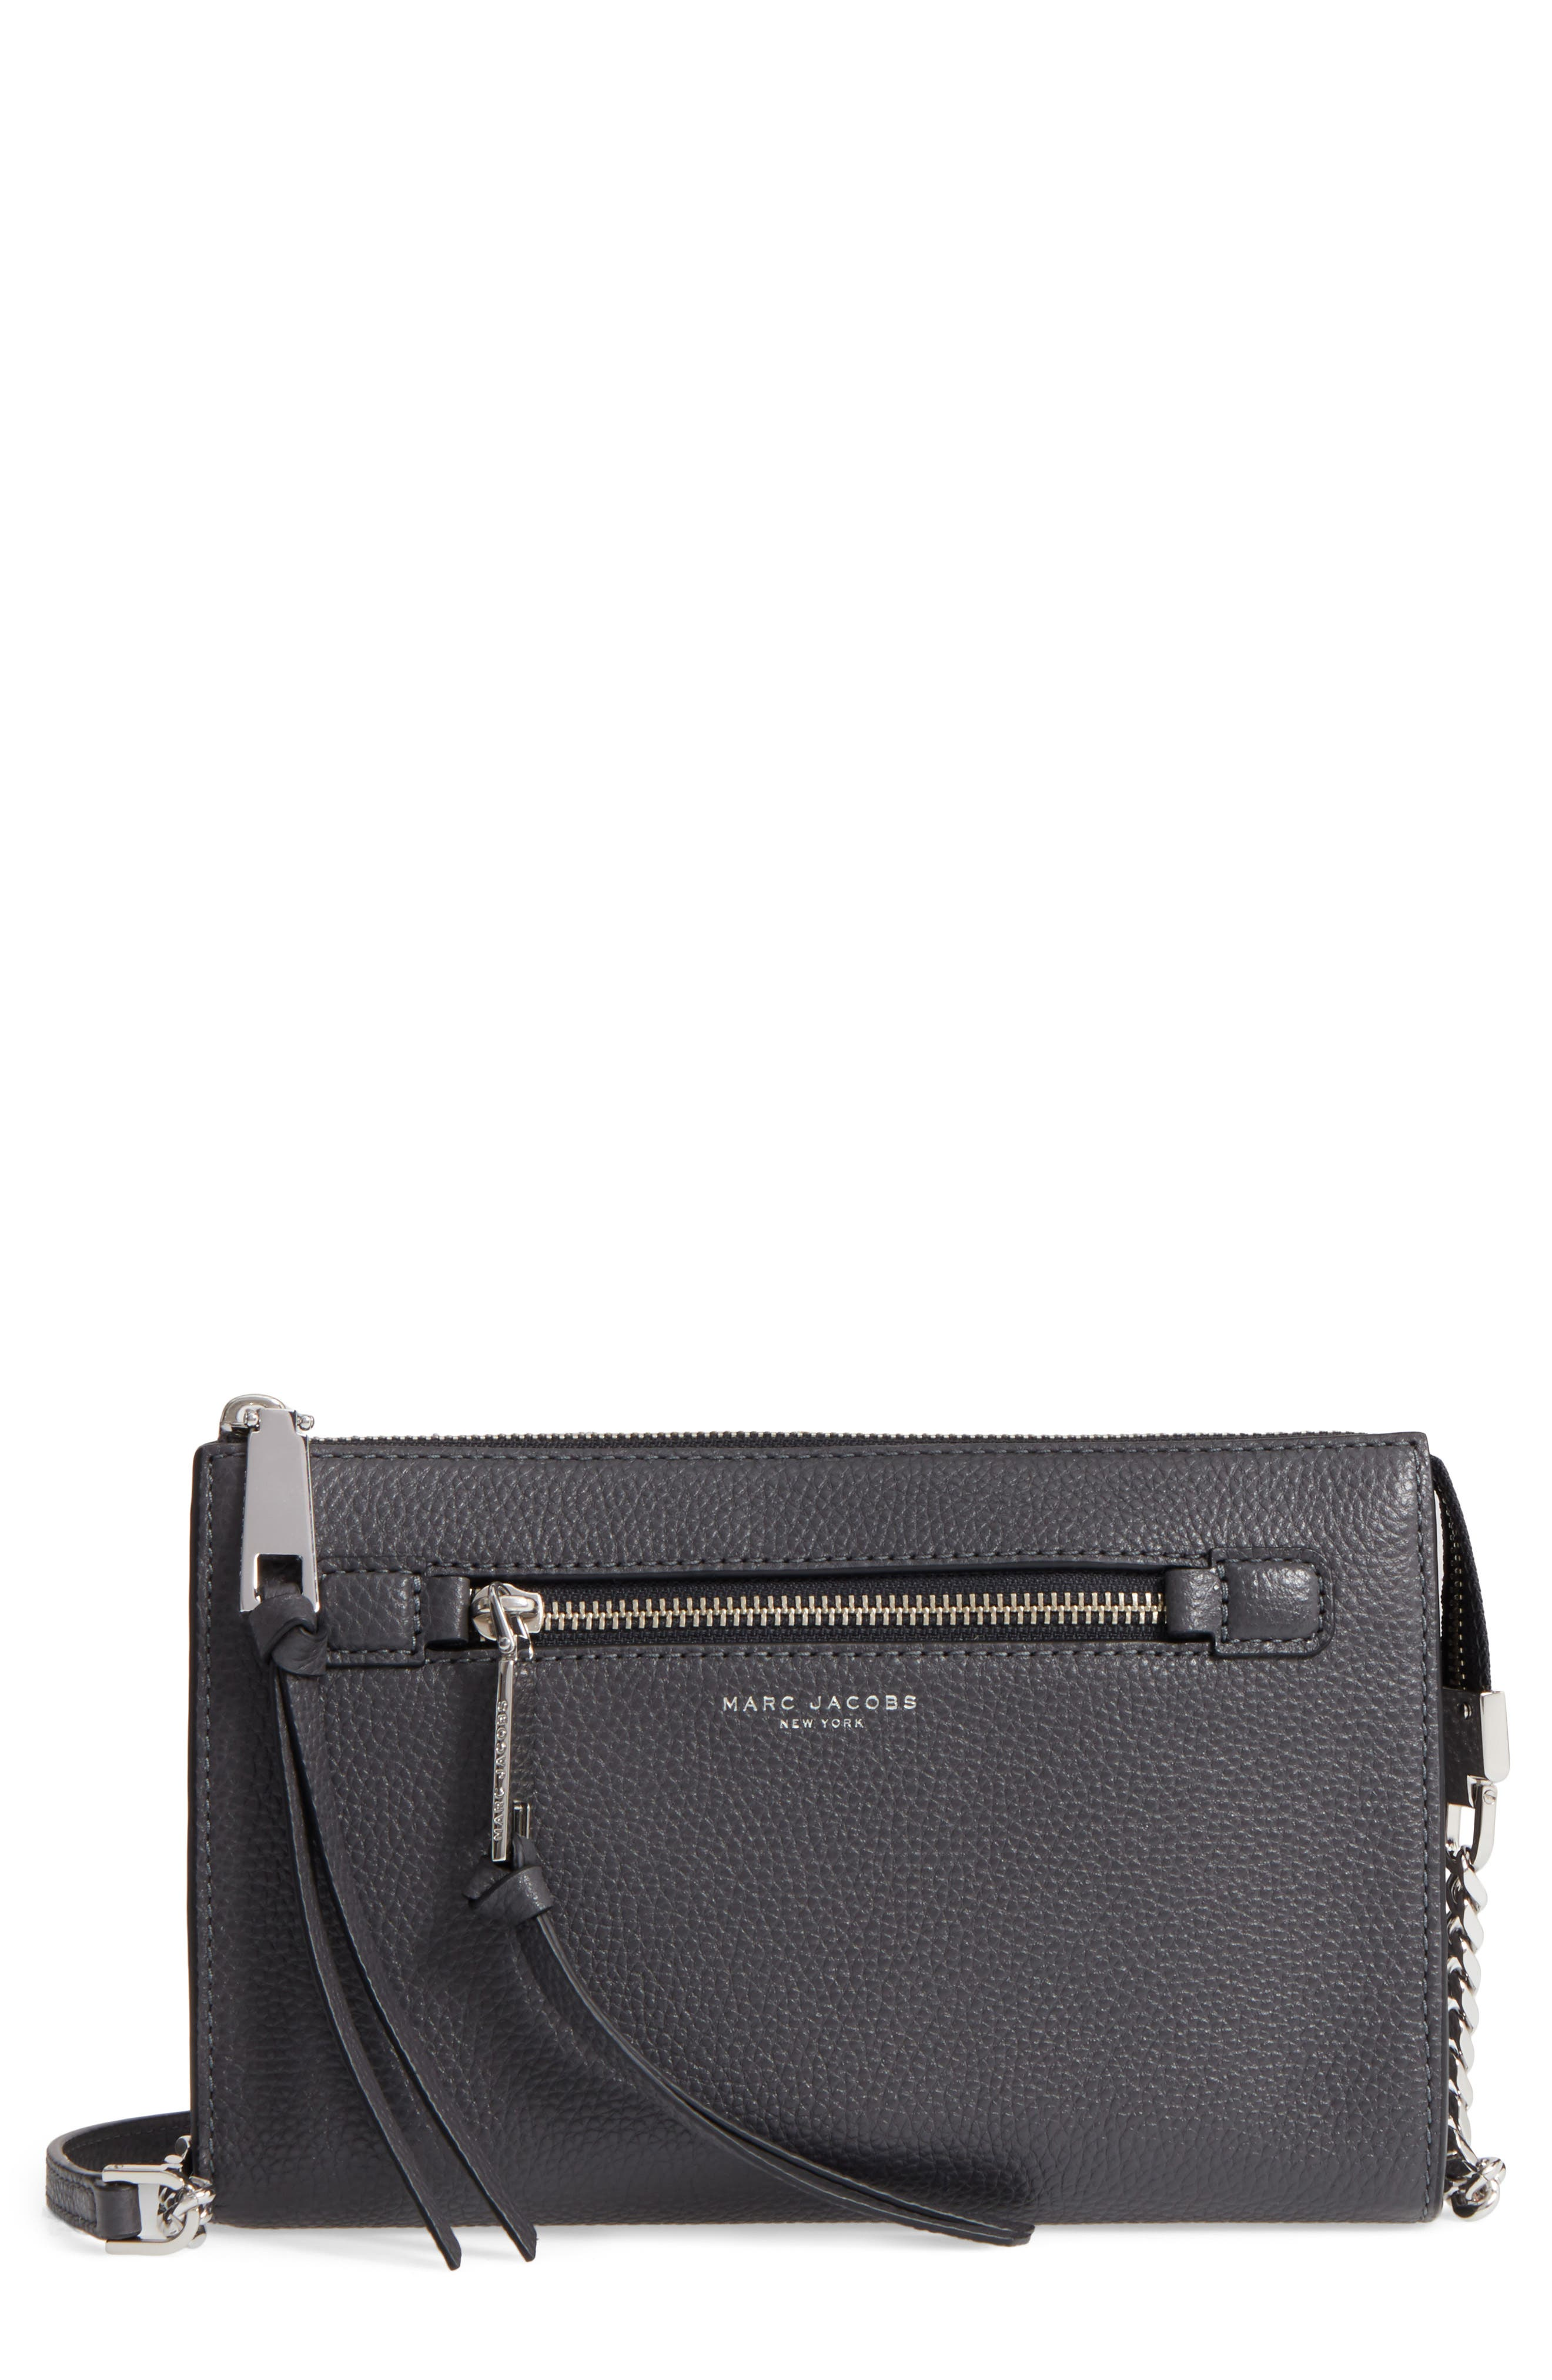 Alternate Image 1 Selected - MARC JACOBS Small Recruit Leather Crossbody Bag